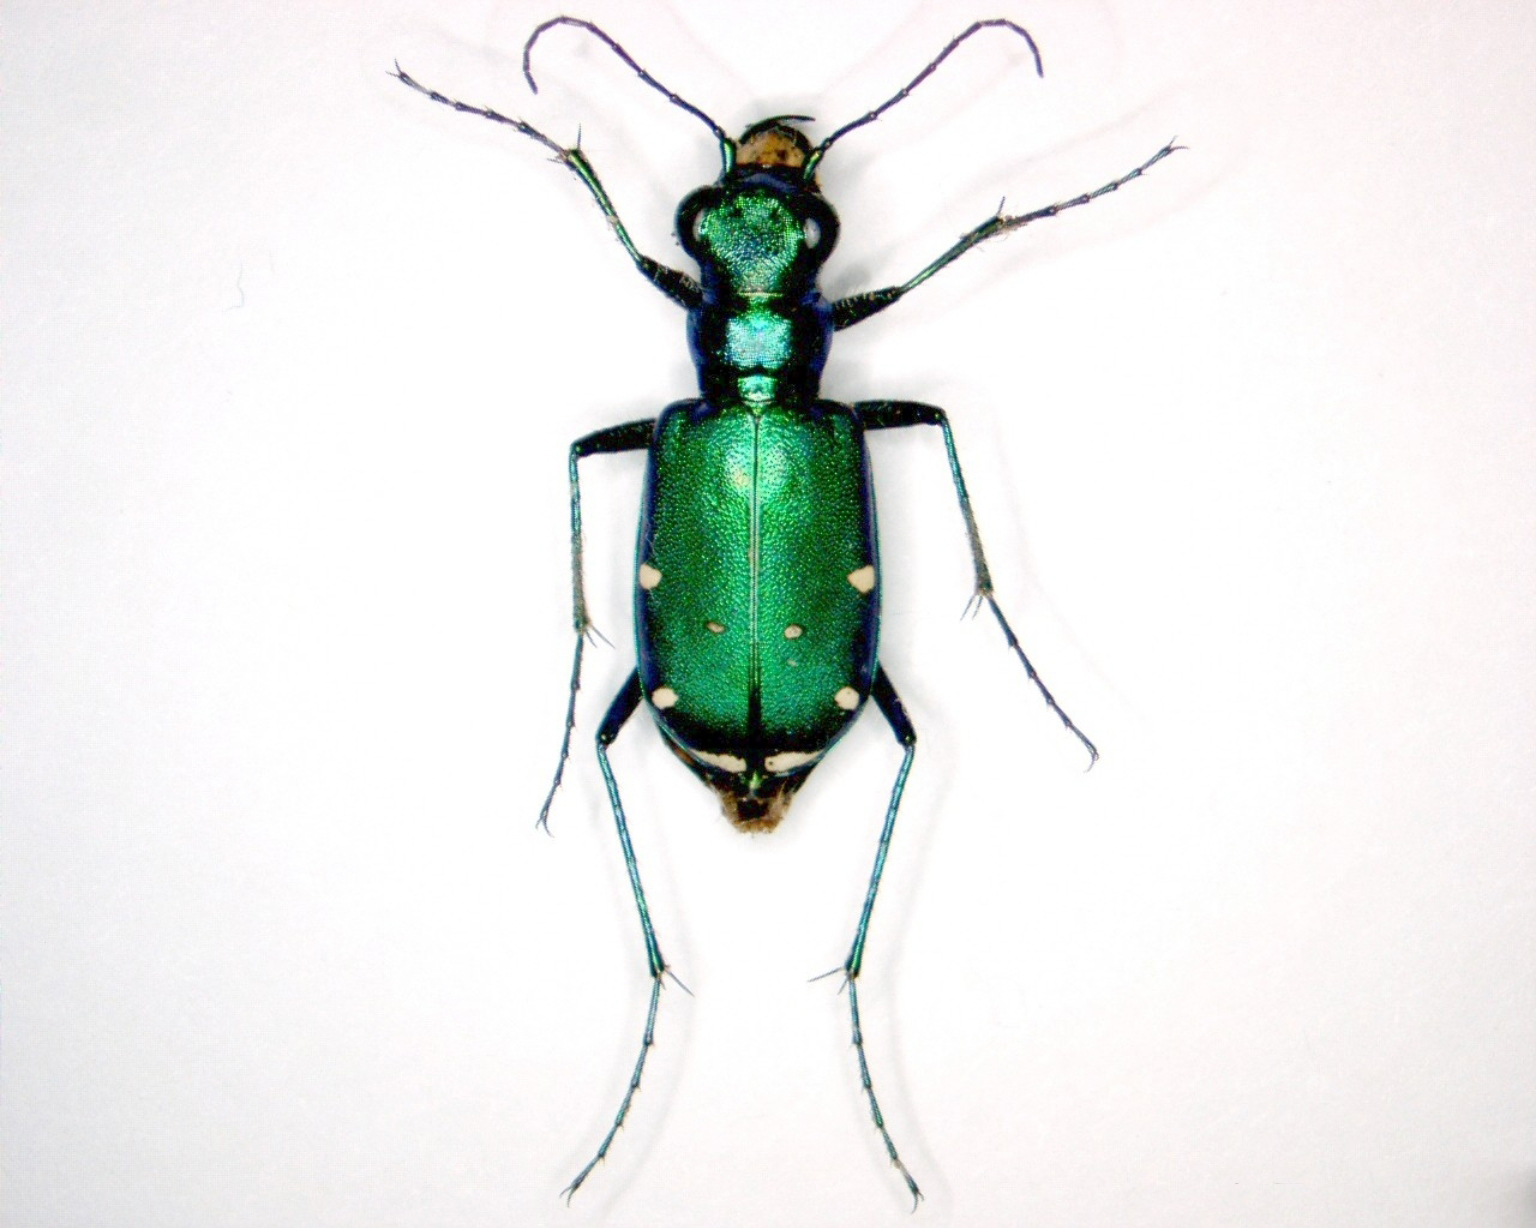 Six-spotted green tiger beetle ( Cicindela sexguttata ). © Pennsylvania Department of Conservation and Natural Resources – Forestry Archive, Bugwood.org